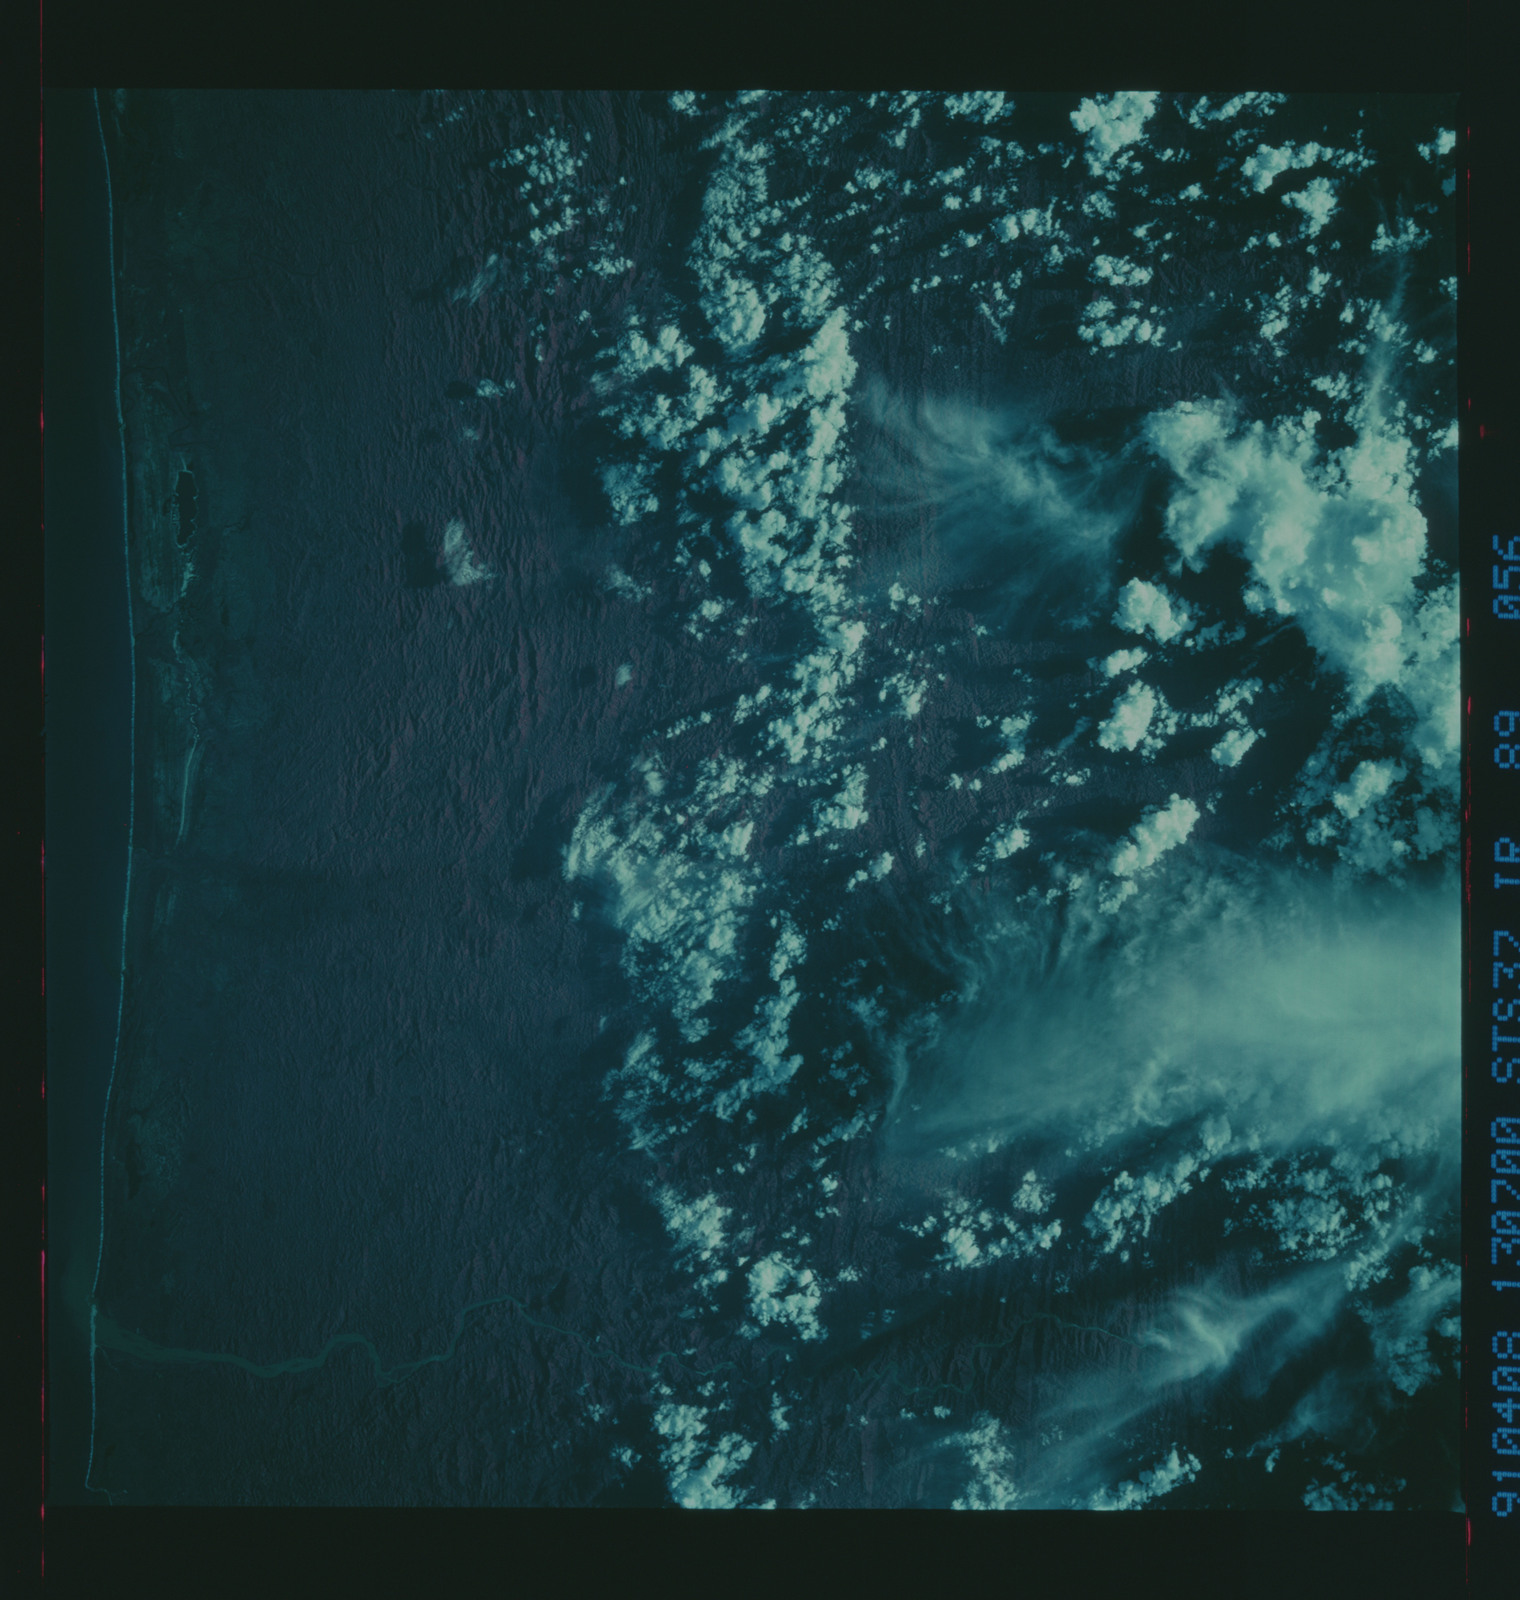 S37-89-056 - STS-037 - Infrared Earth observations taken from OV-104 during STS-37 mission